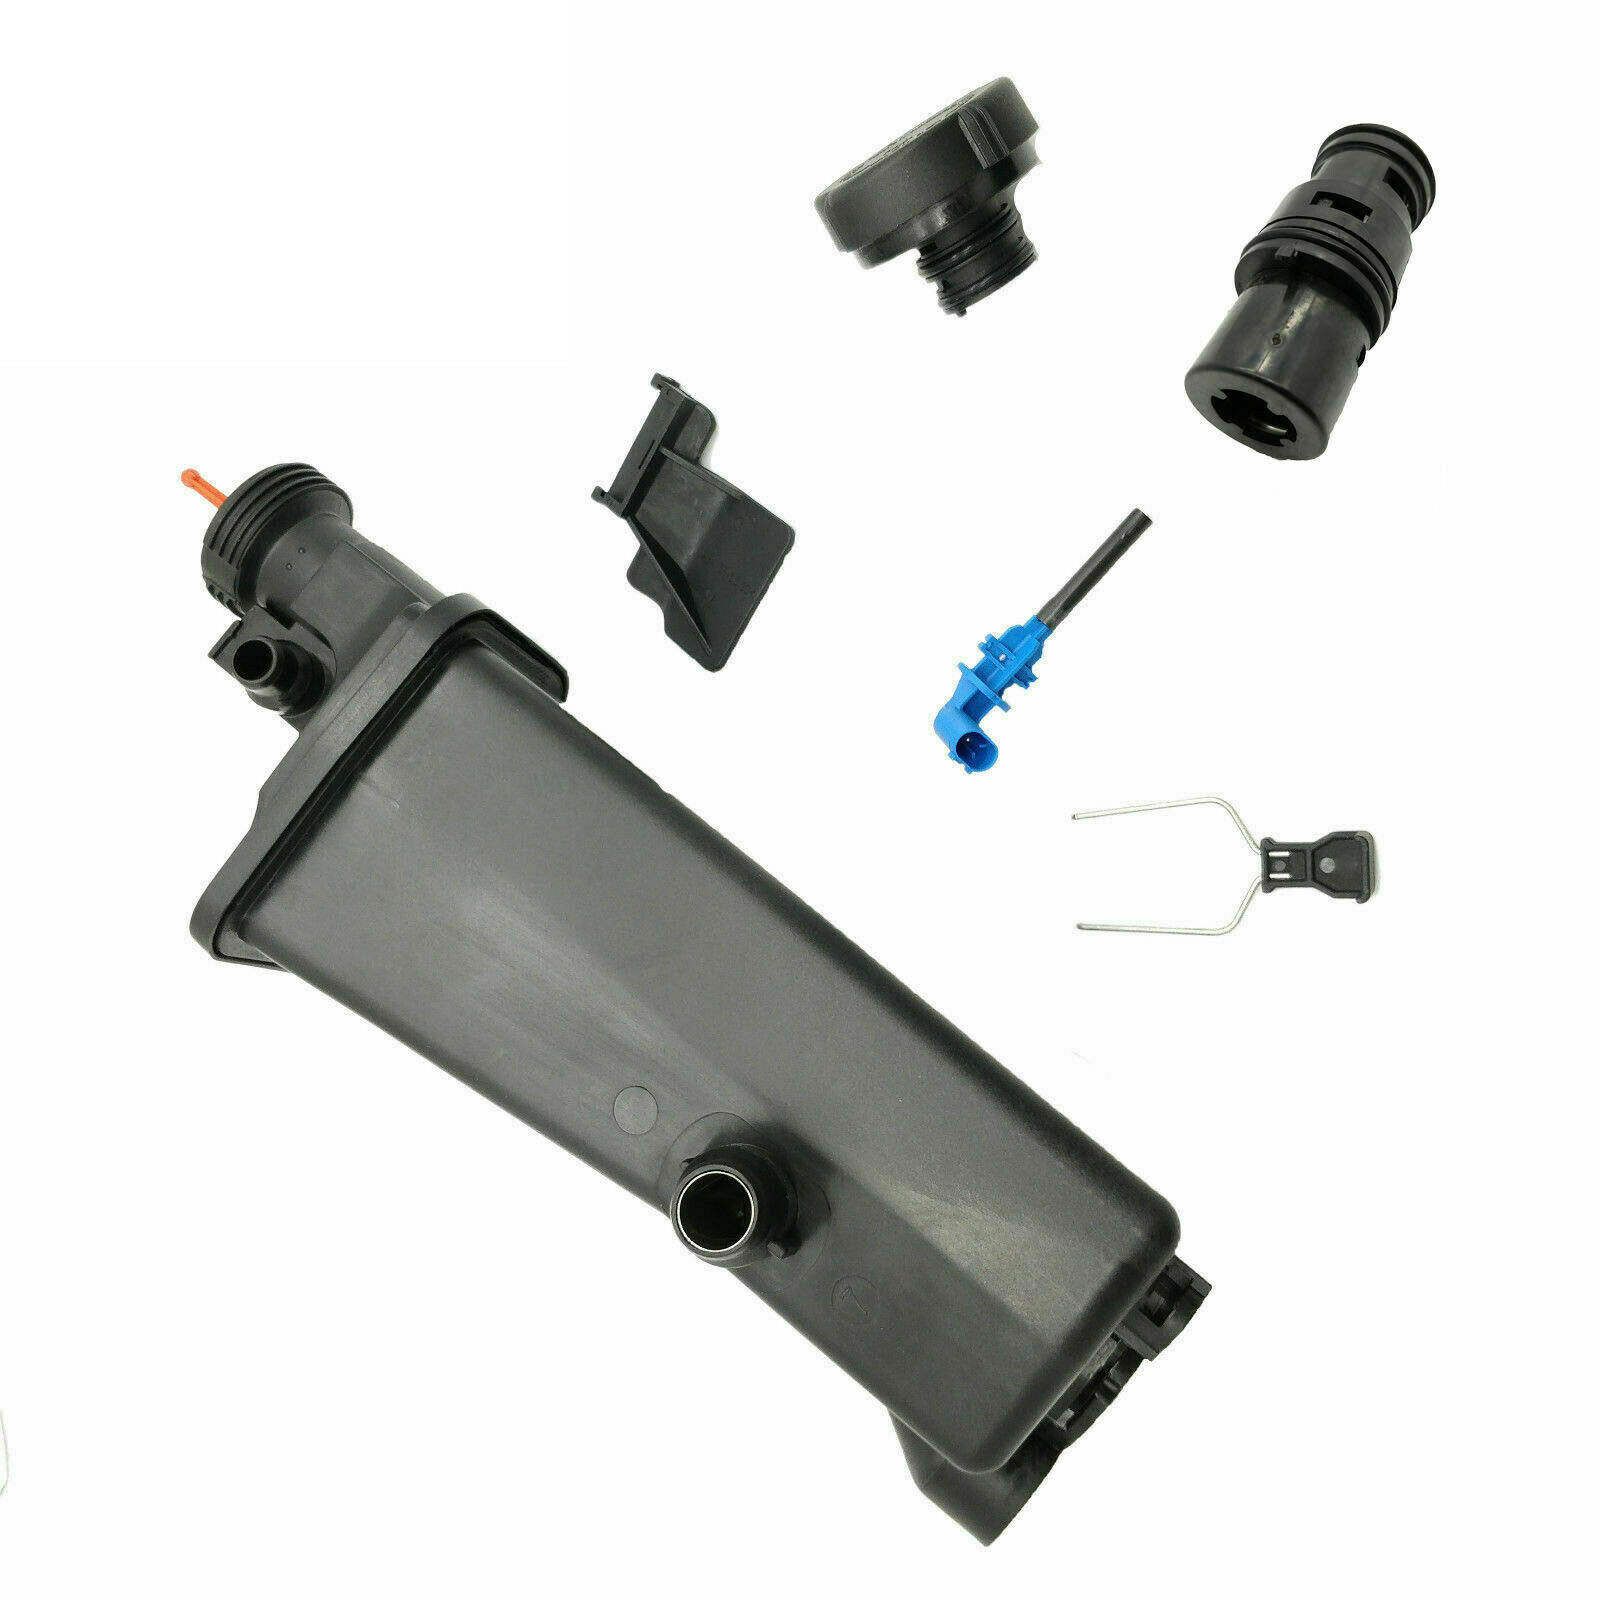 New Coolant Overflow Expansion Tank <span class=keywords><strong>Reservoir</strong></span> passt BMW-S E46 323 325 328 E53 X5 E83 X3 17137787039, 17111436413, 17117573781